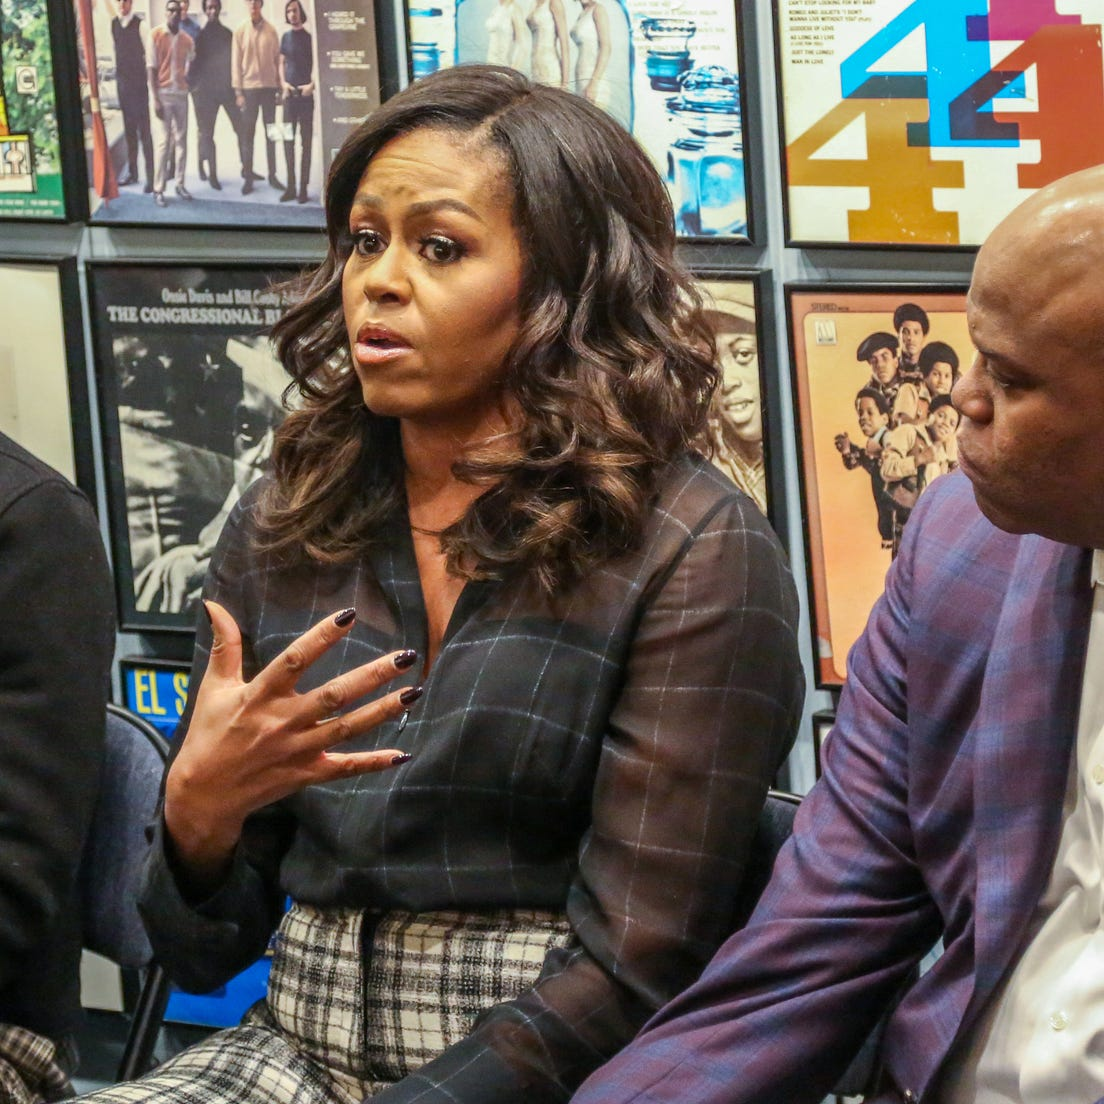 Check out Michelle Obama's Motown playlist celebrating Detroit visit